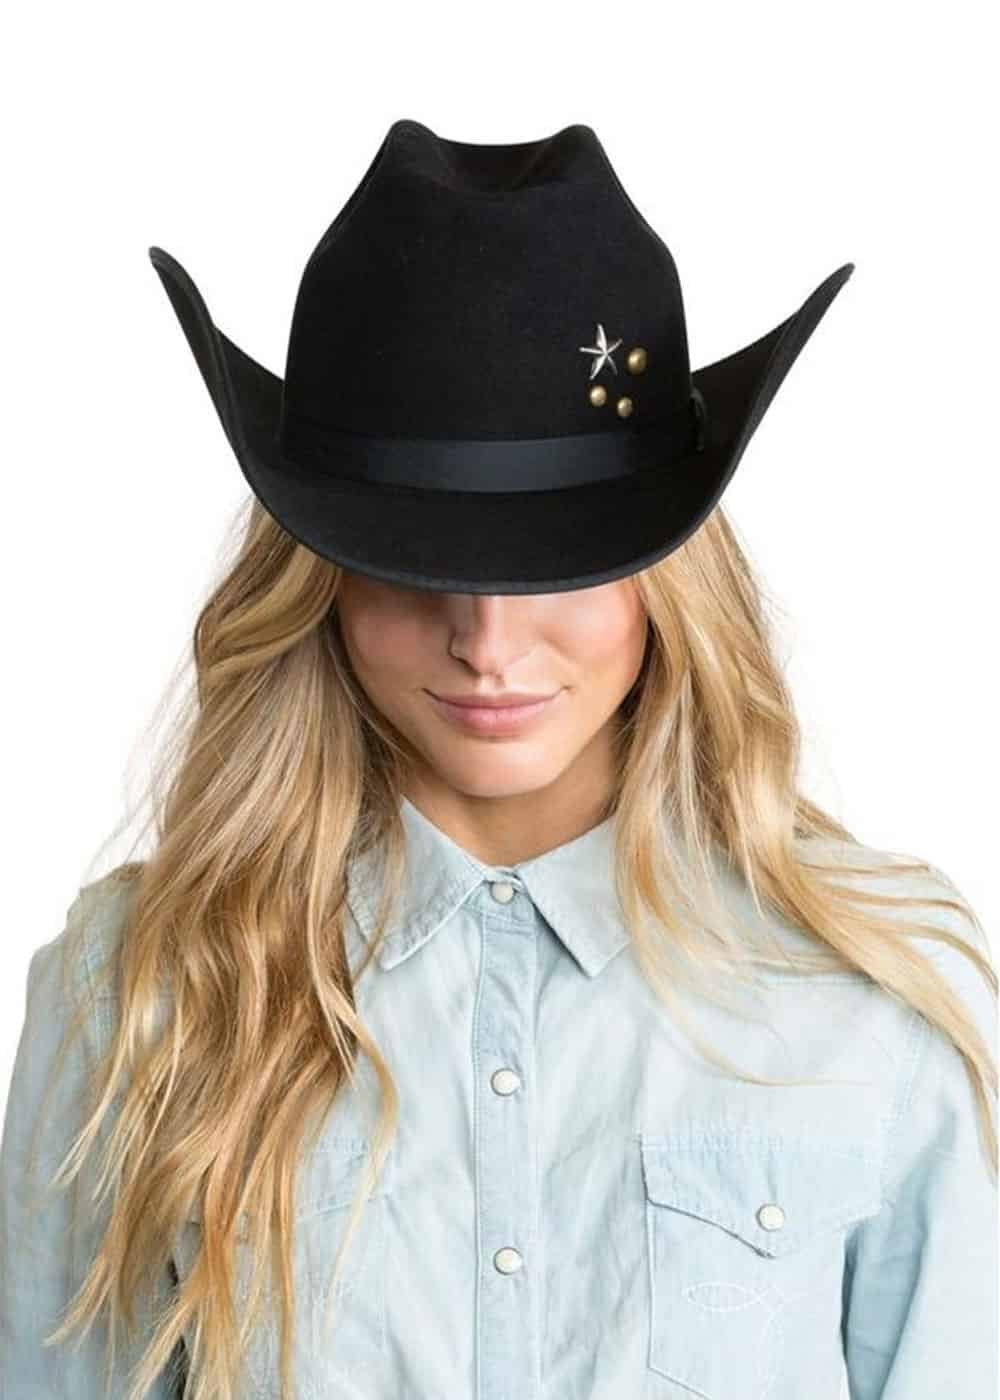 greeley hat works nfr hats cowgirl magazine